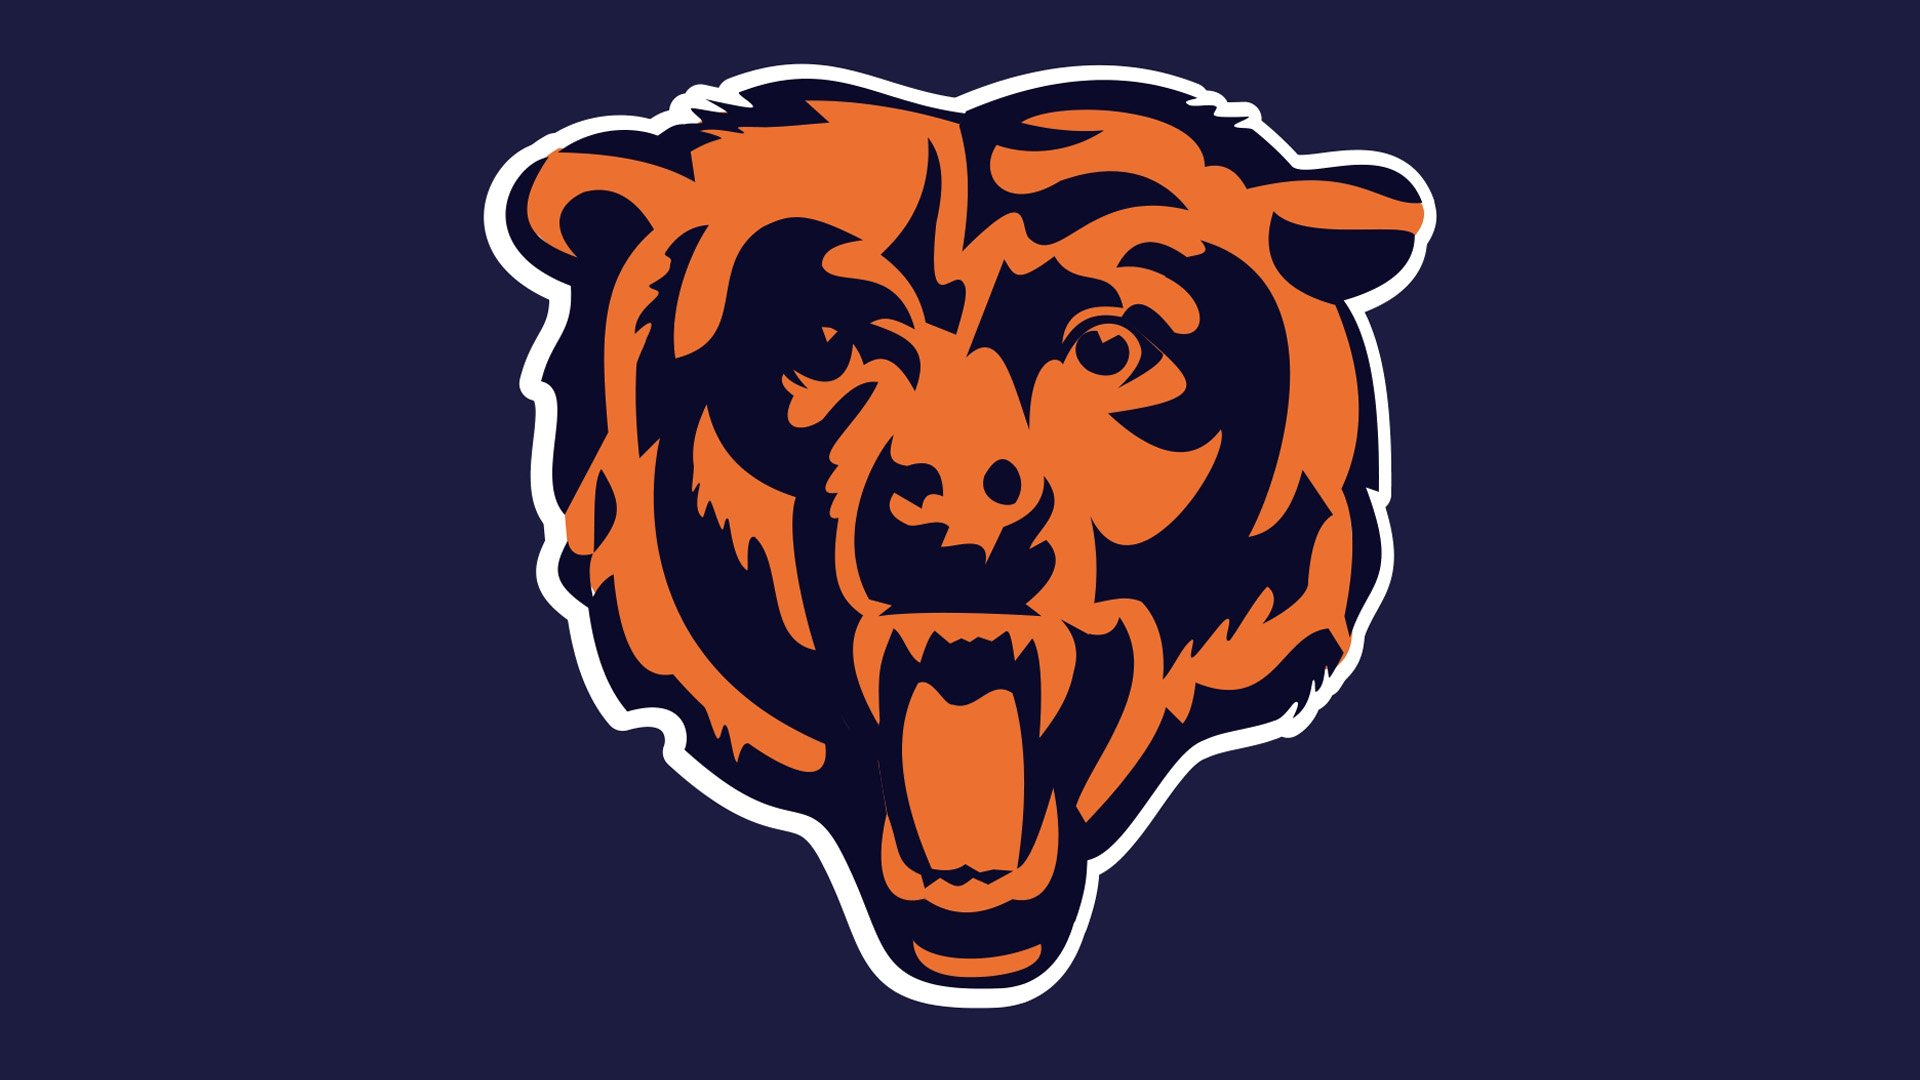 blinds wallpaper sports field chicago bears bear image 1920x1080